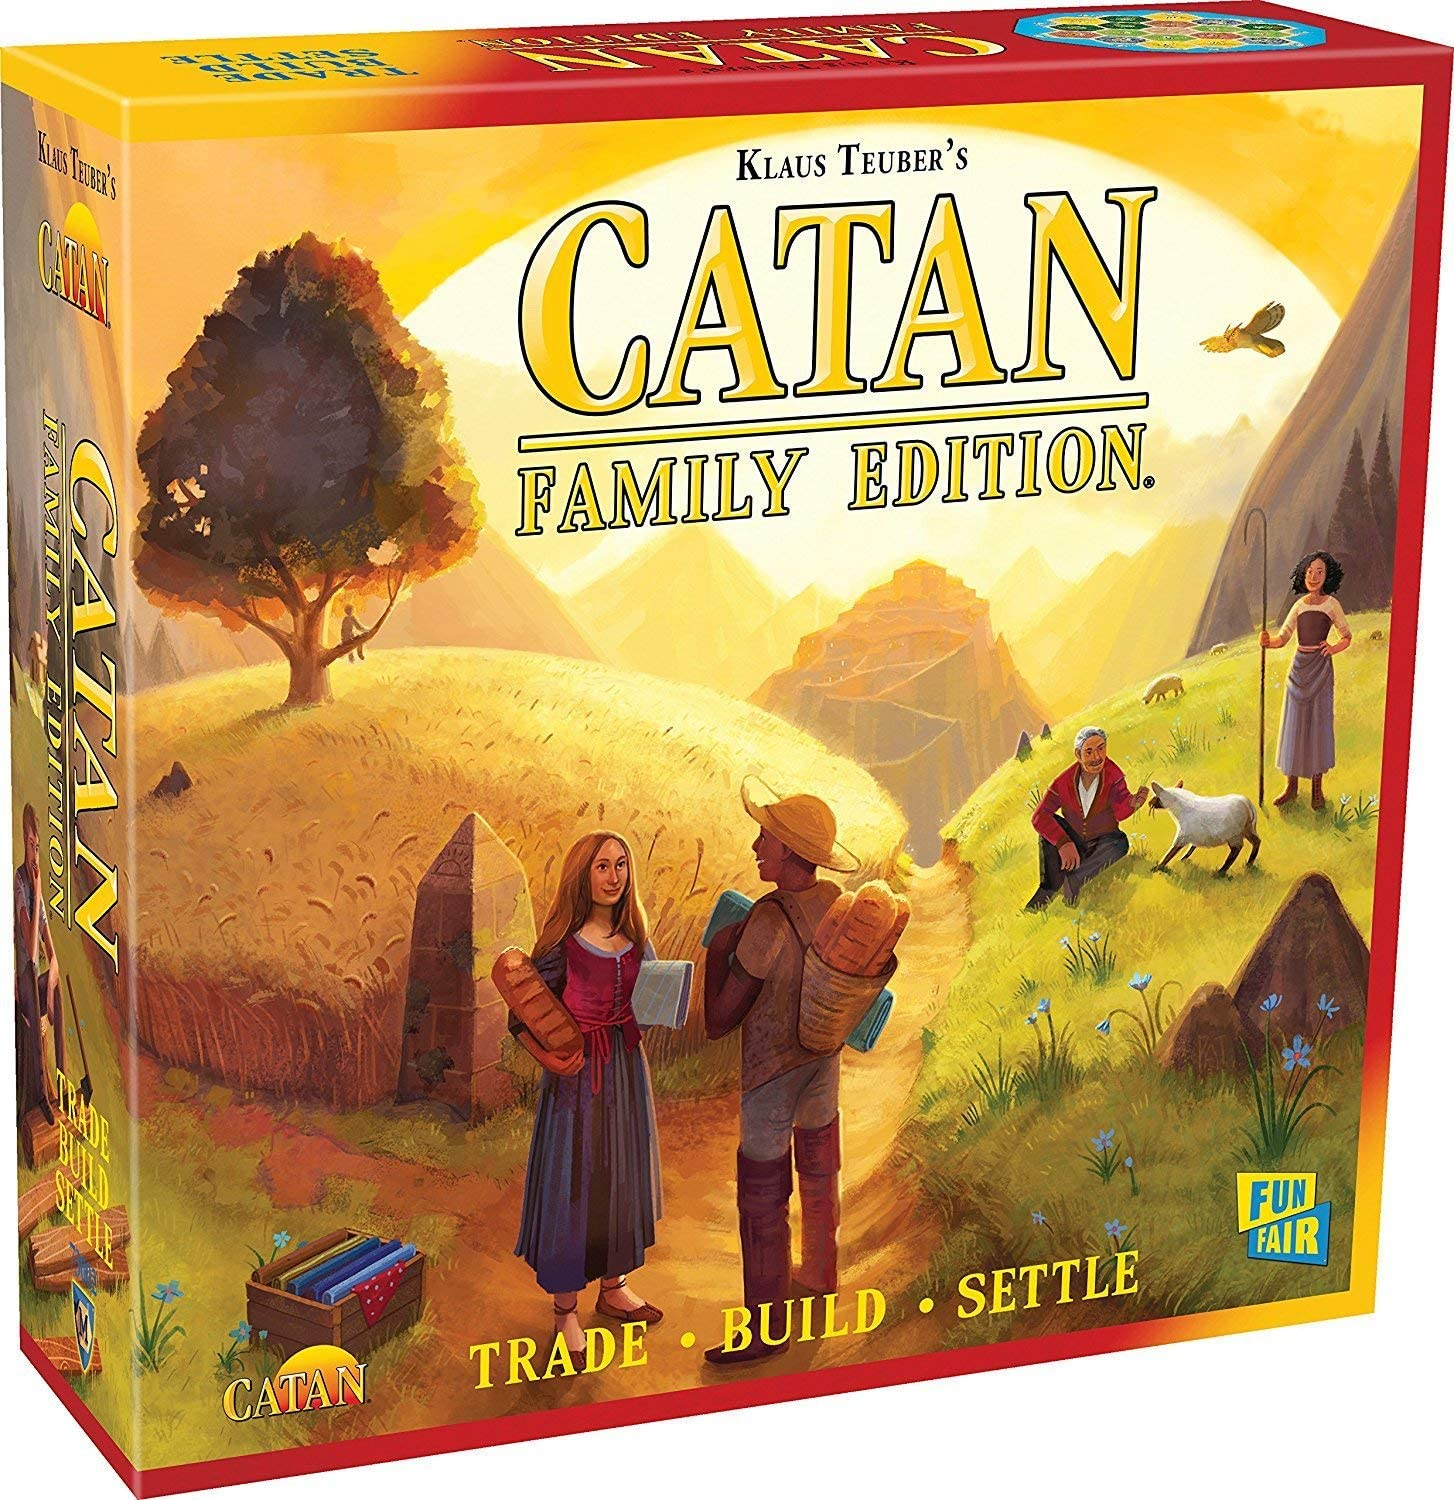 CATAN Family Edition Board Game | Family Board Game | Board Game for Adults and Family | Adventure Board Game | Ages 10+ | For 3 to 4 players | Average Playtime 60 minutes | Made by Catan Studio